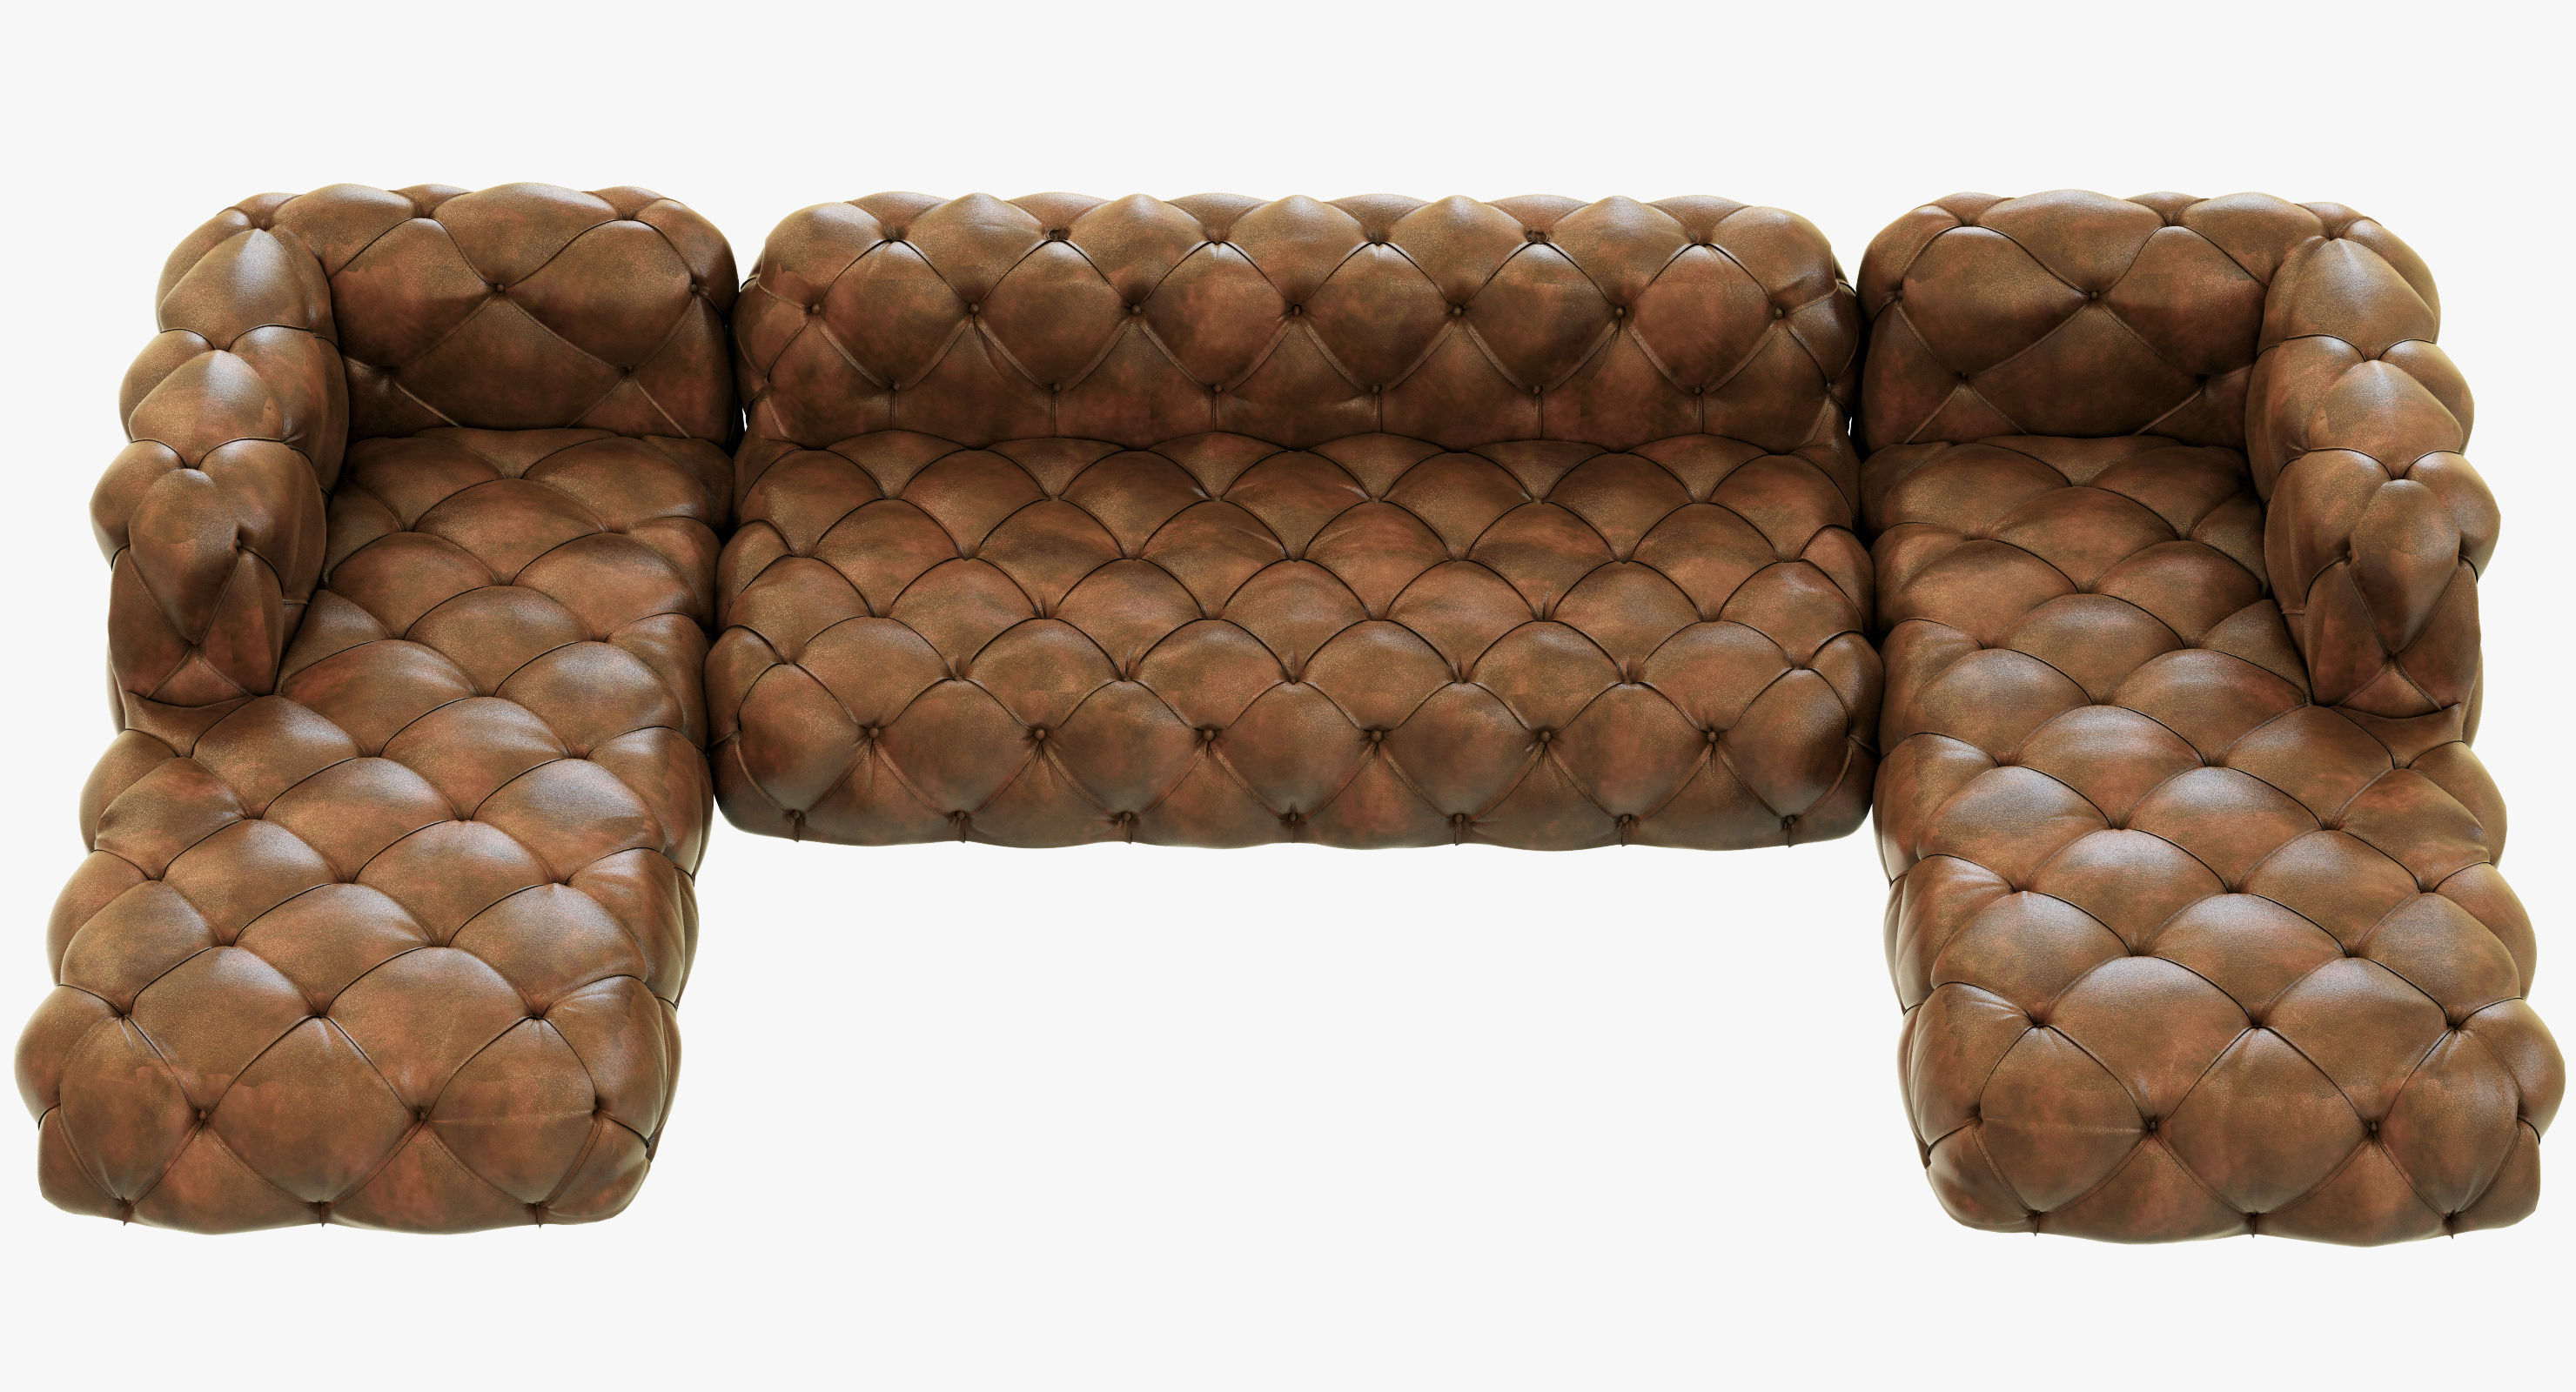 leather sectional sofa restoration hardware old world style soho tufted u chaise 3d model max obj mtl 3ds fbx